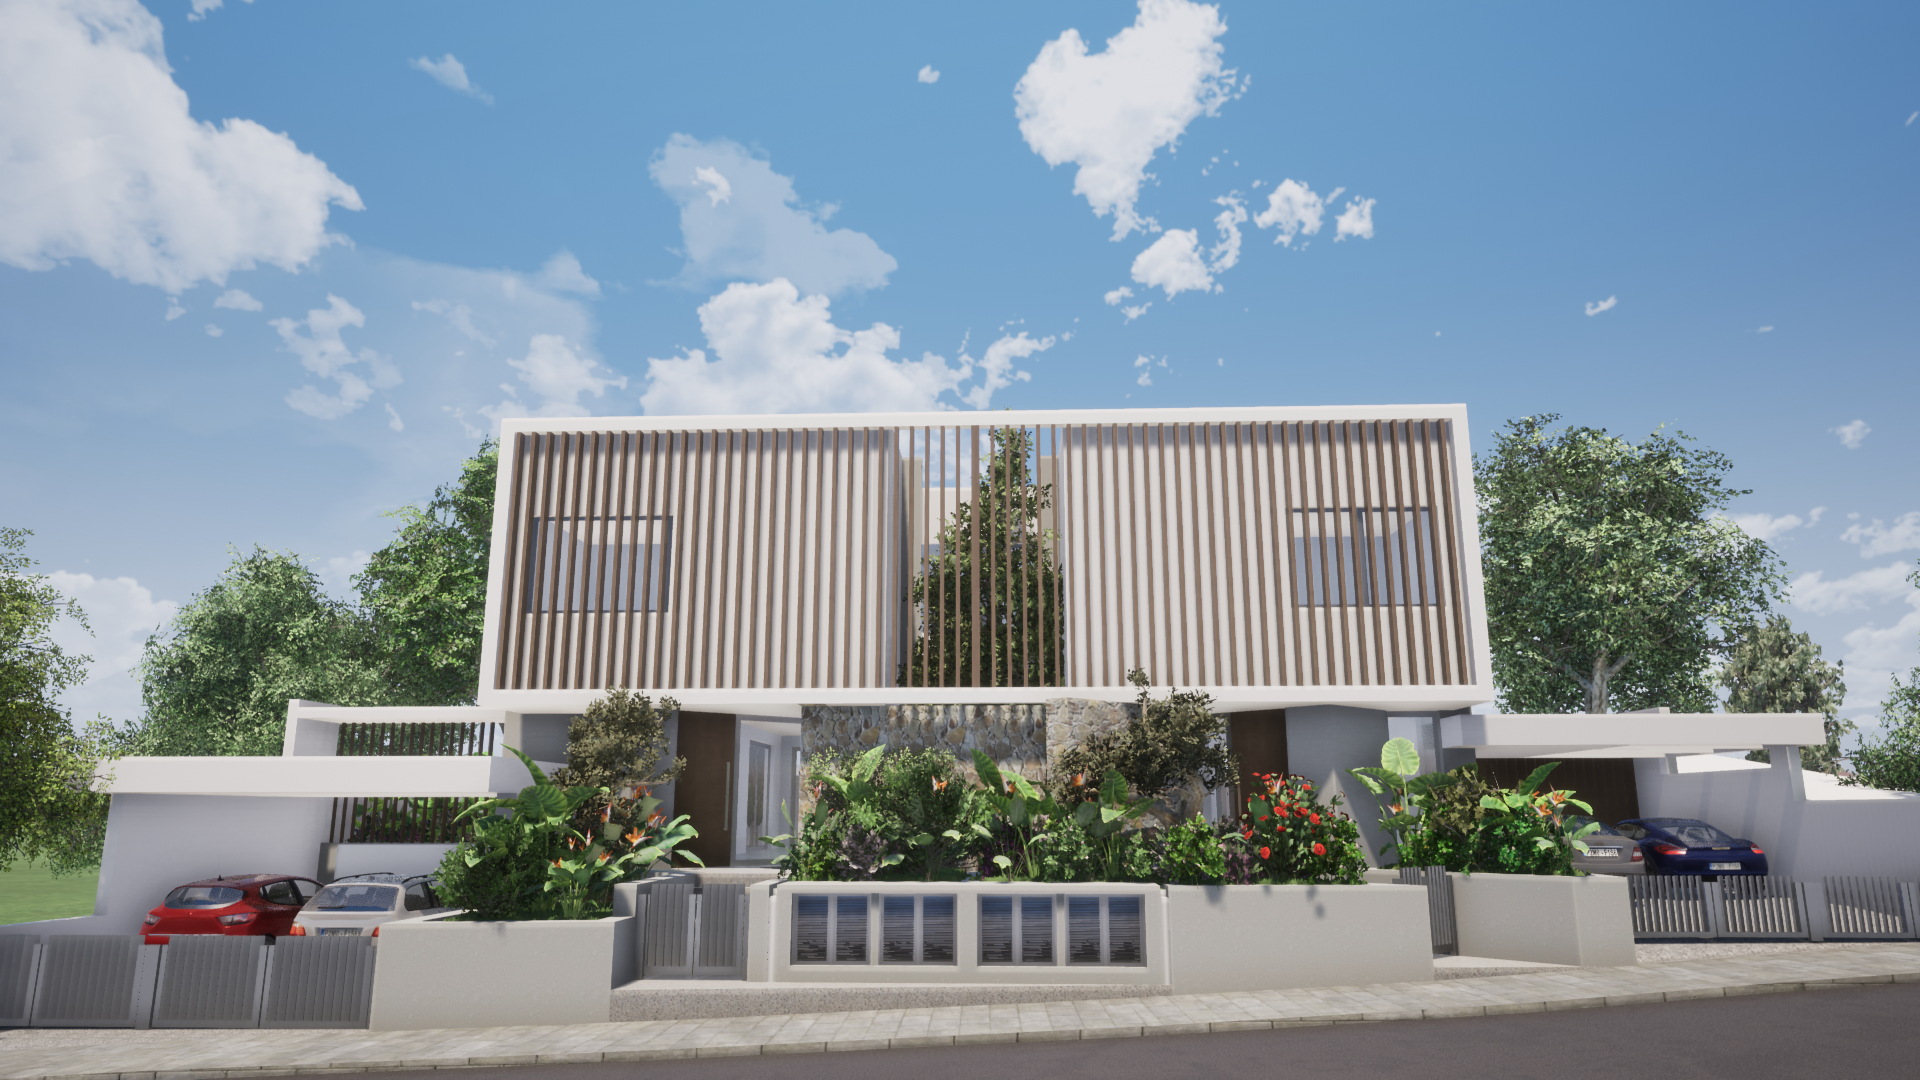 Four bedroom semi-detached house in Agios Athanasios